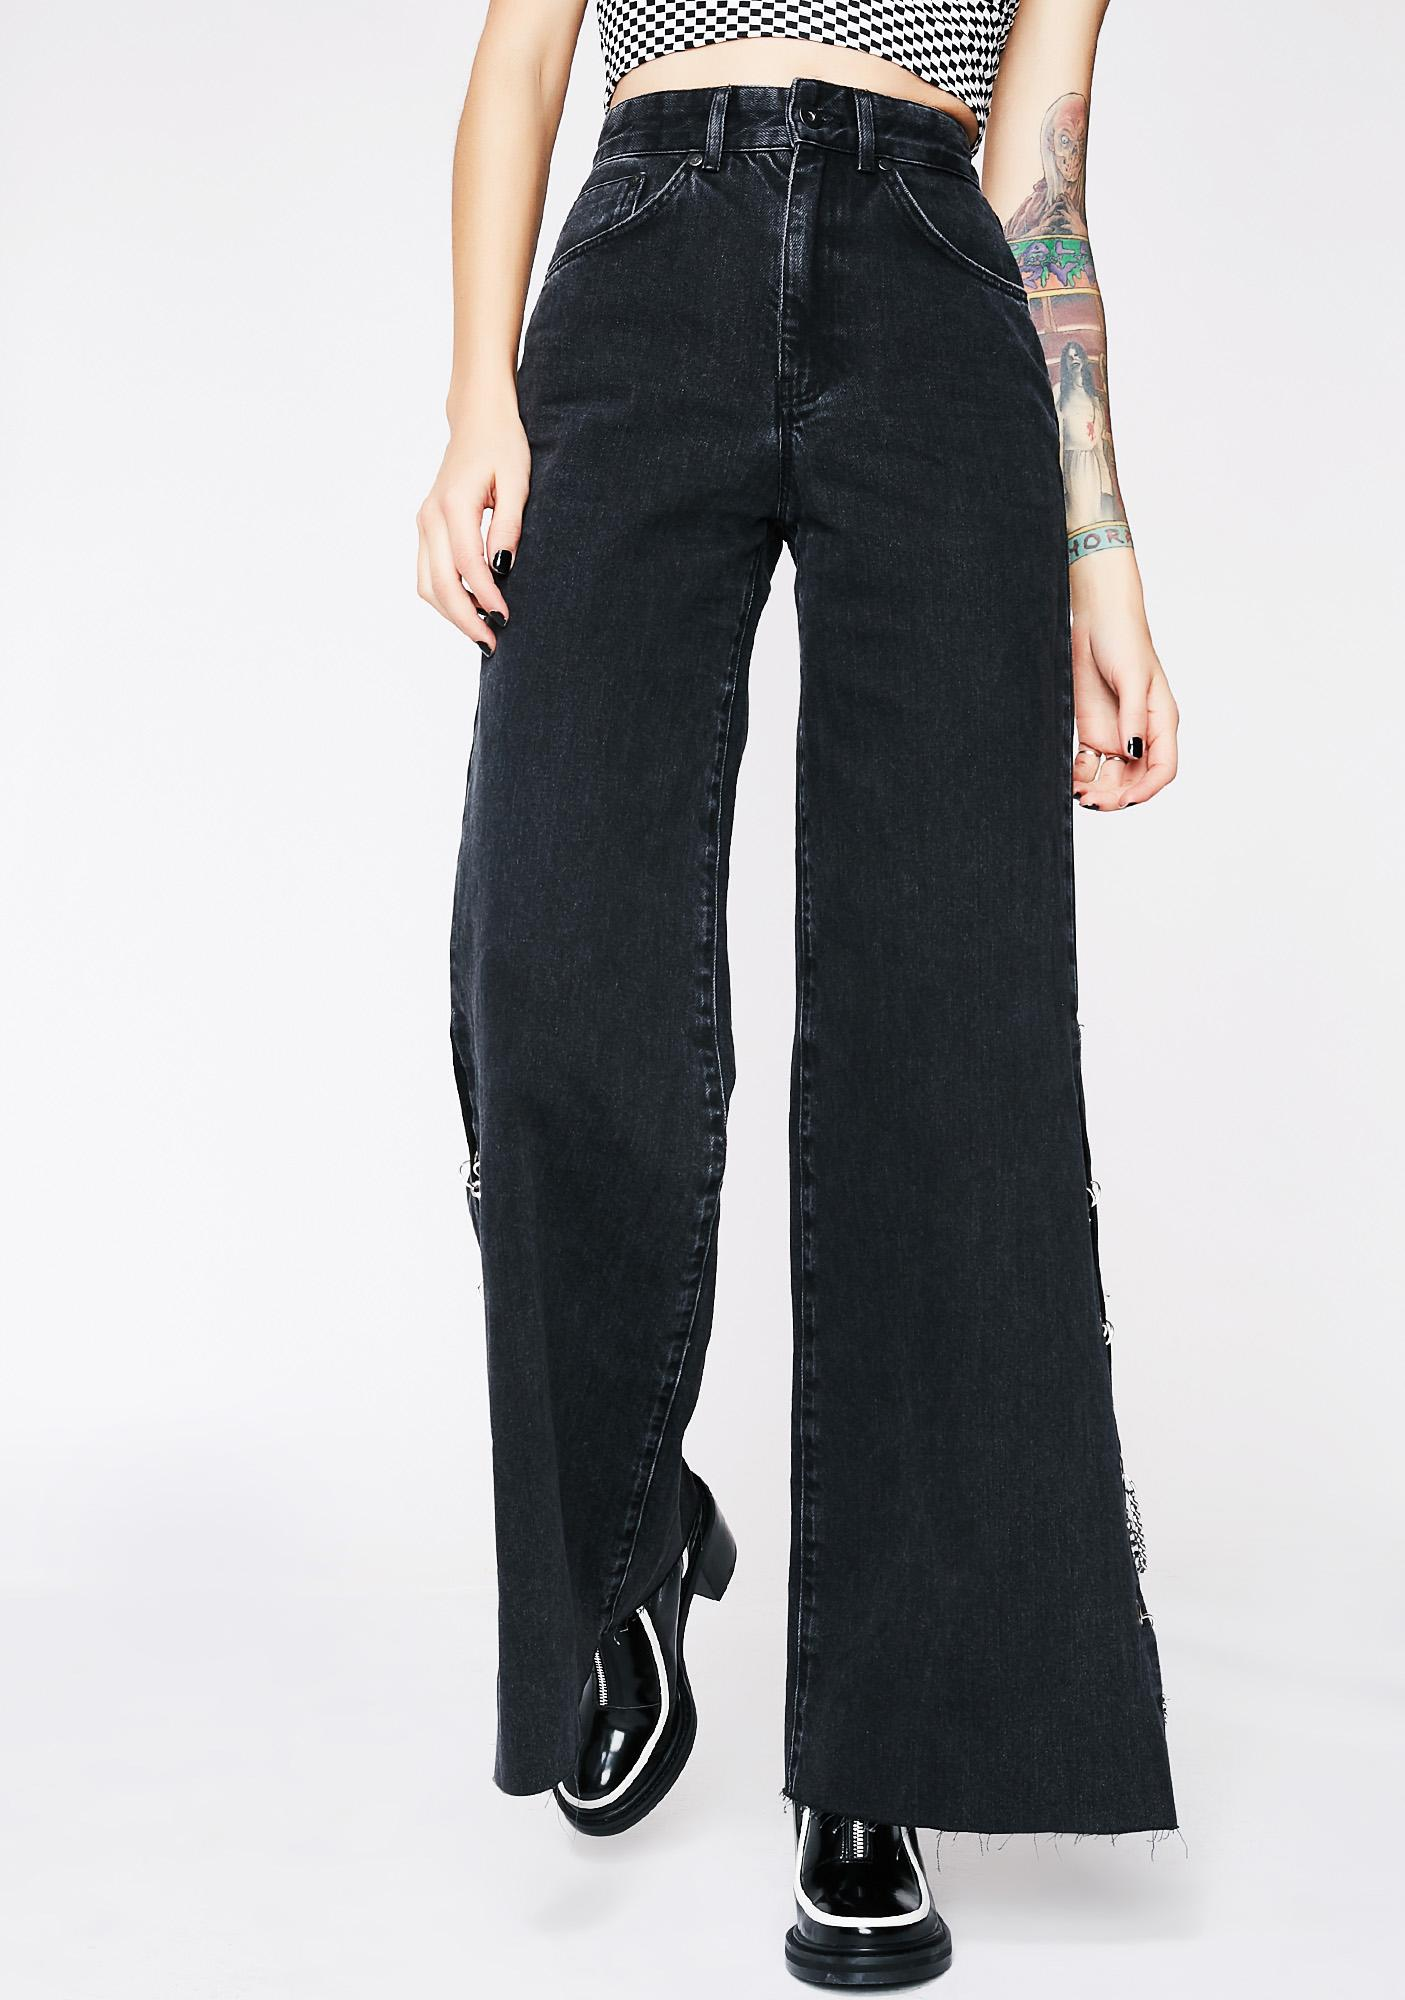 The Ragged Priest Ring Leader Jeans